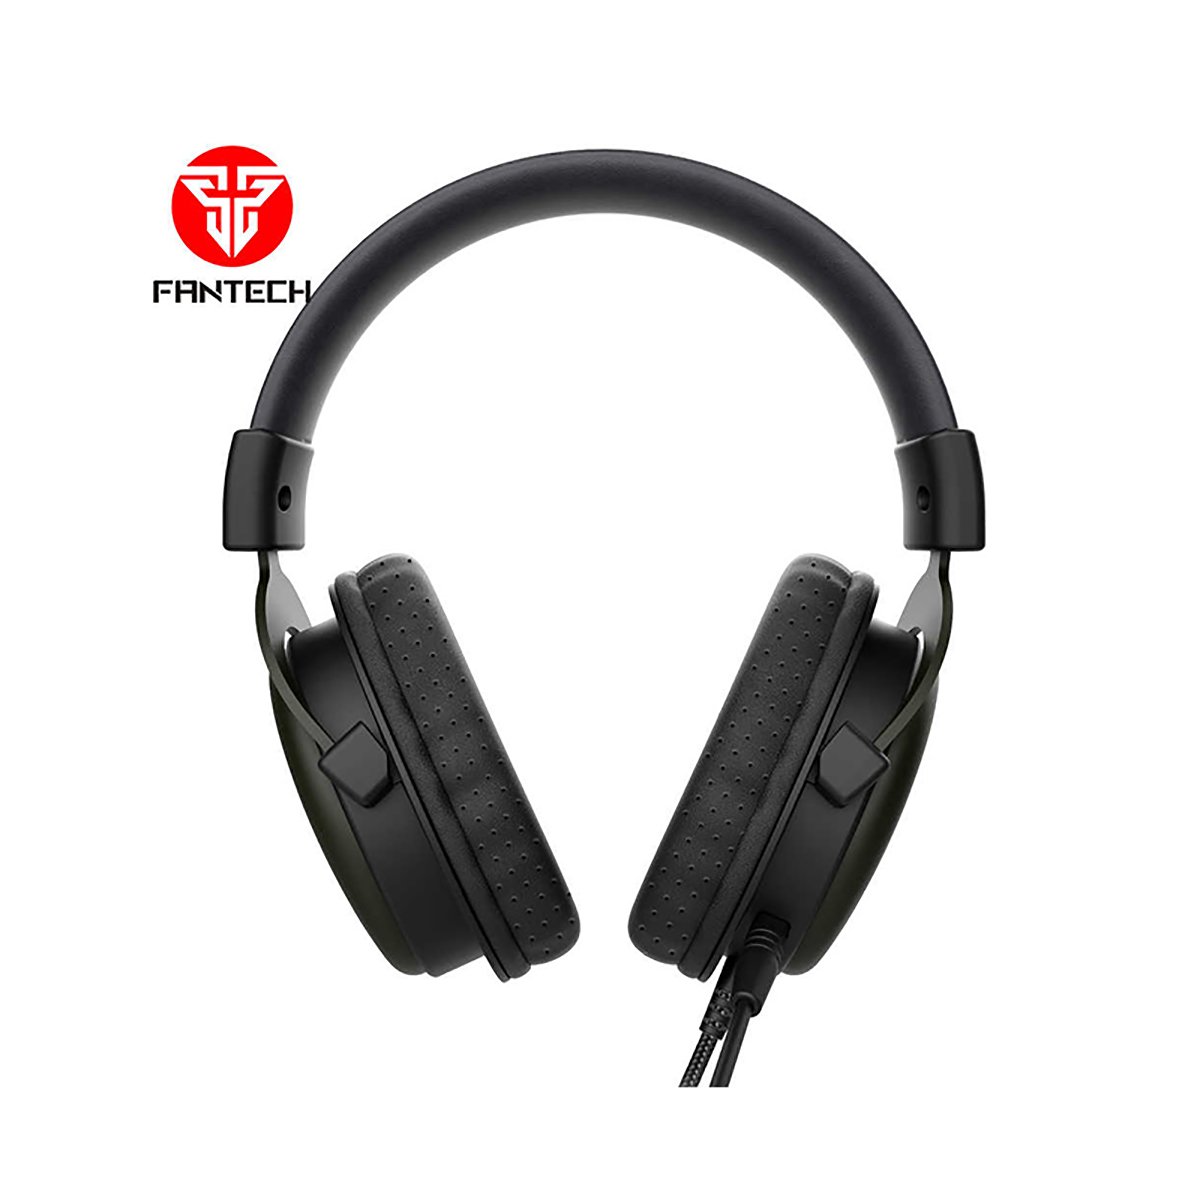 Fantech MH83 Wired Black Gaming Headphone